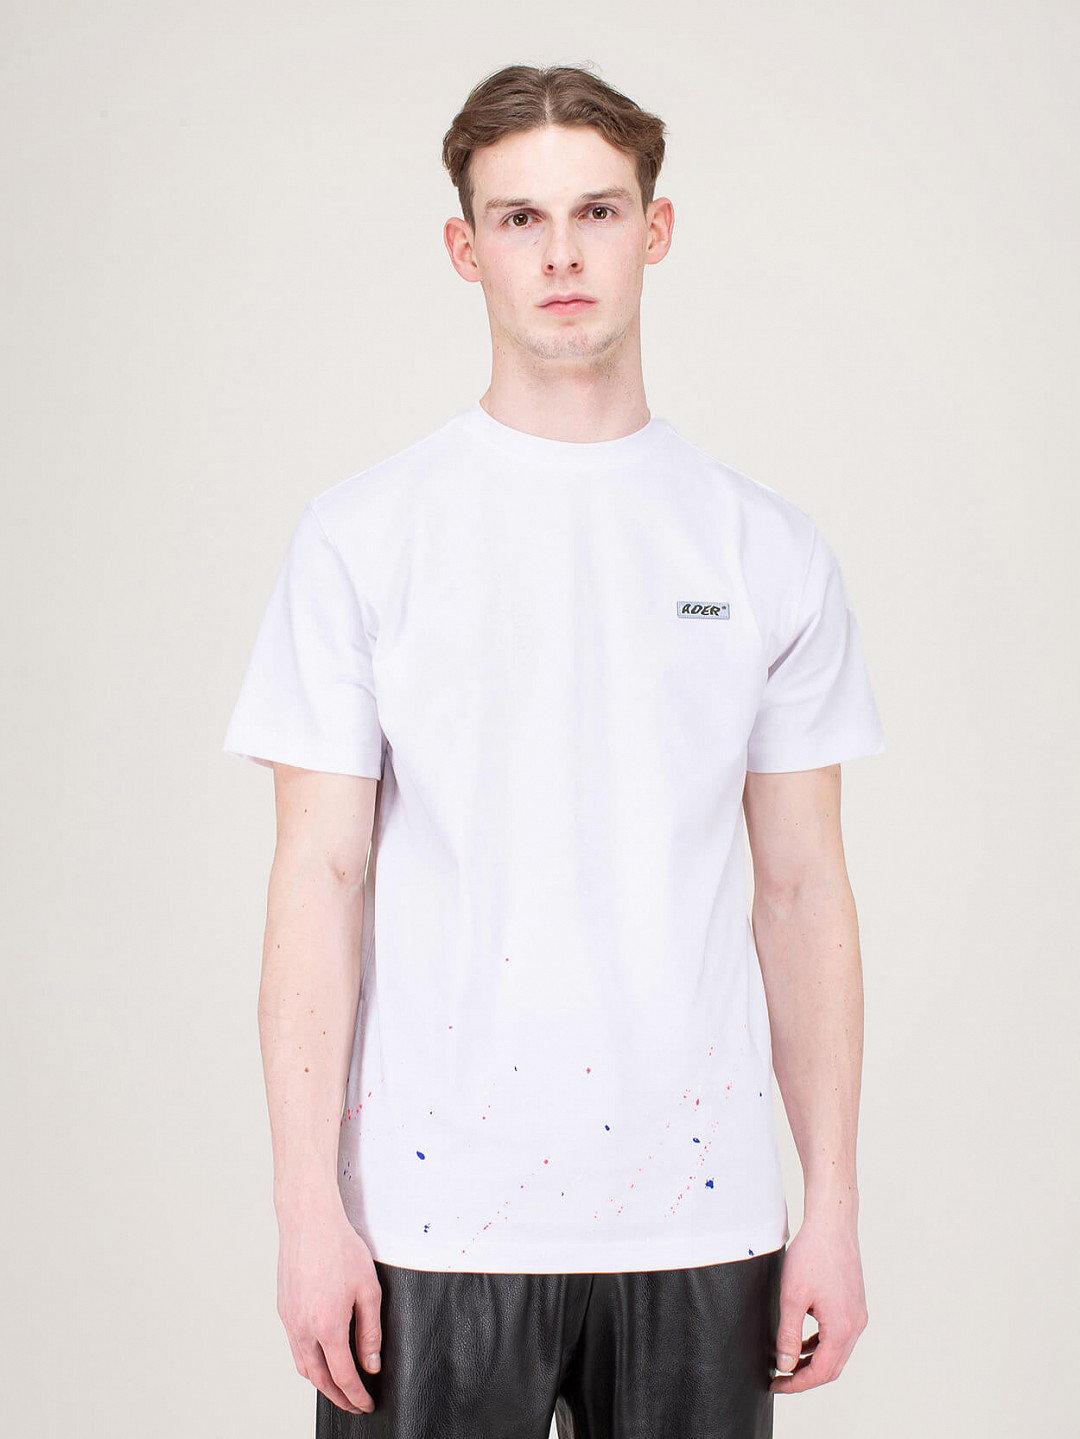 Oversized fit T-Shirt